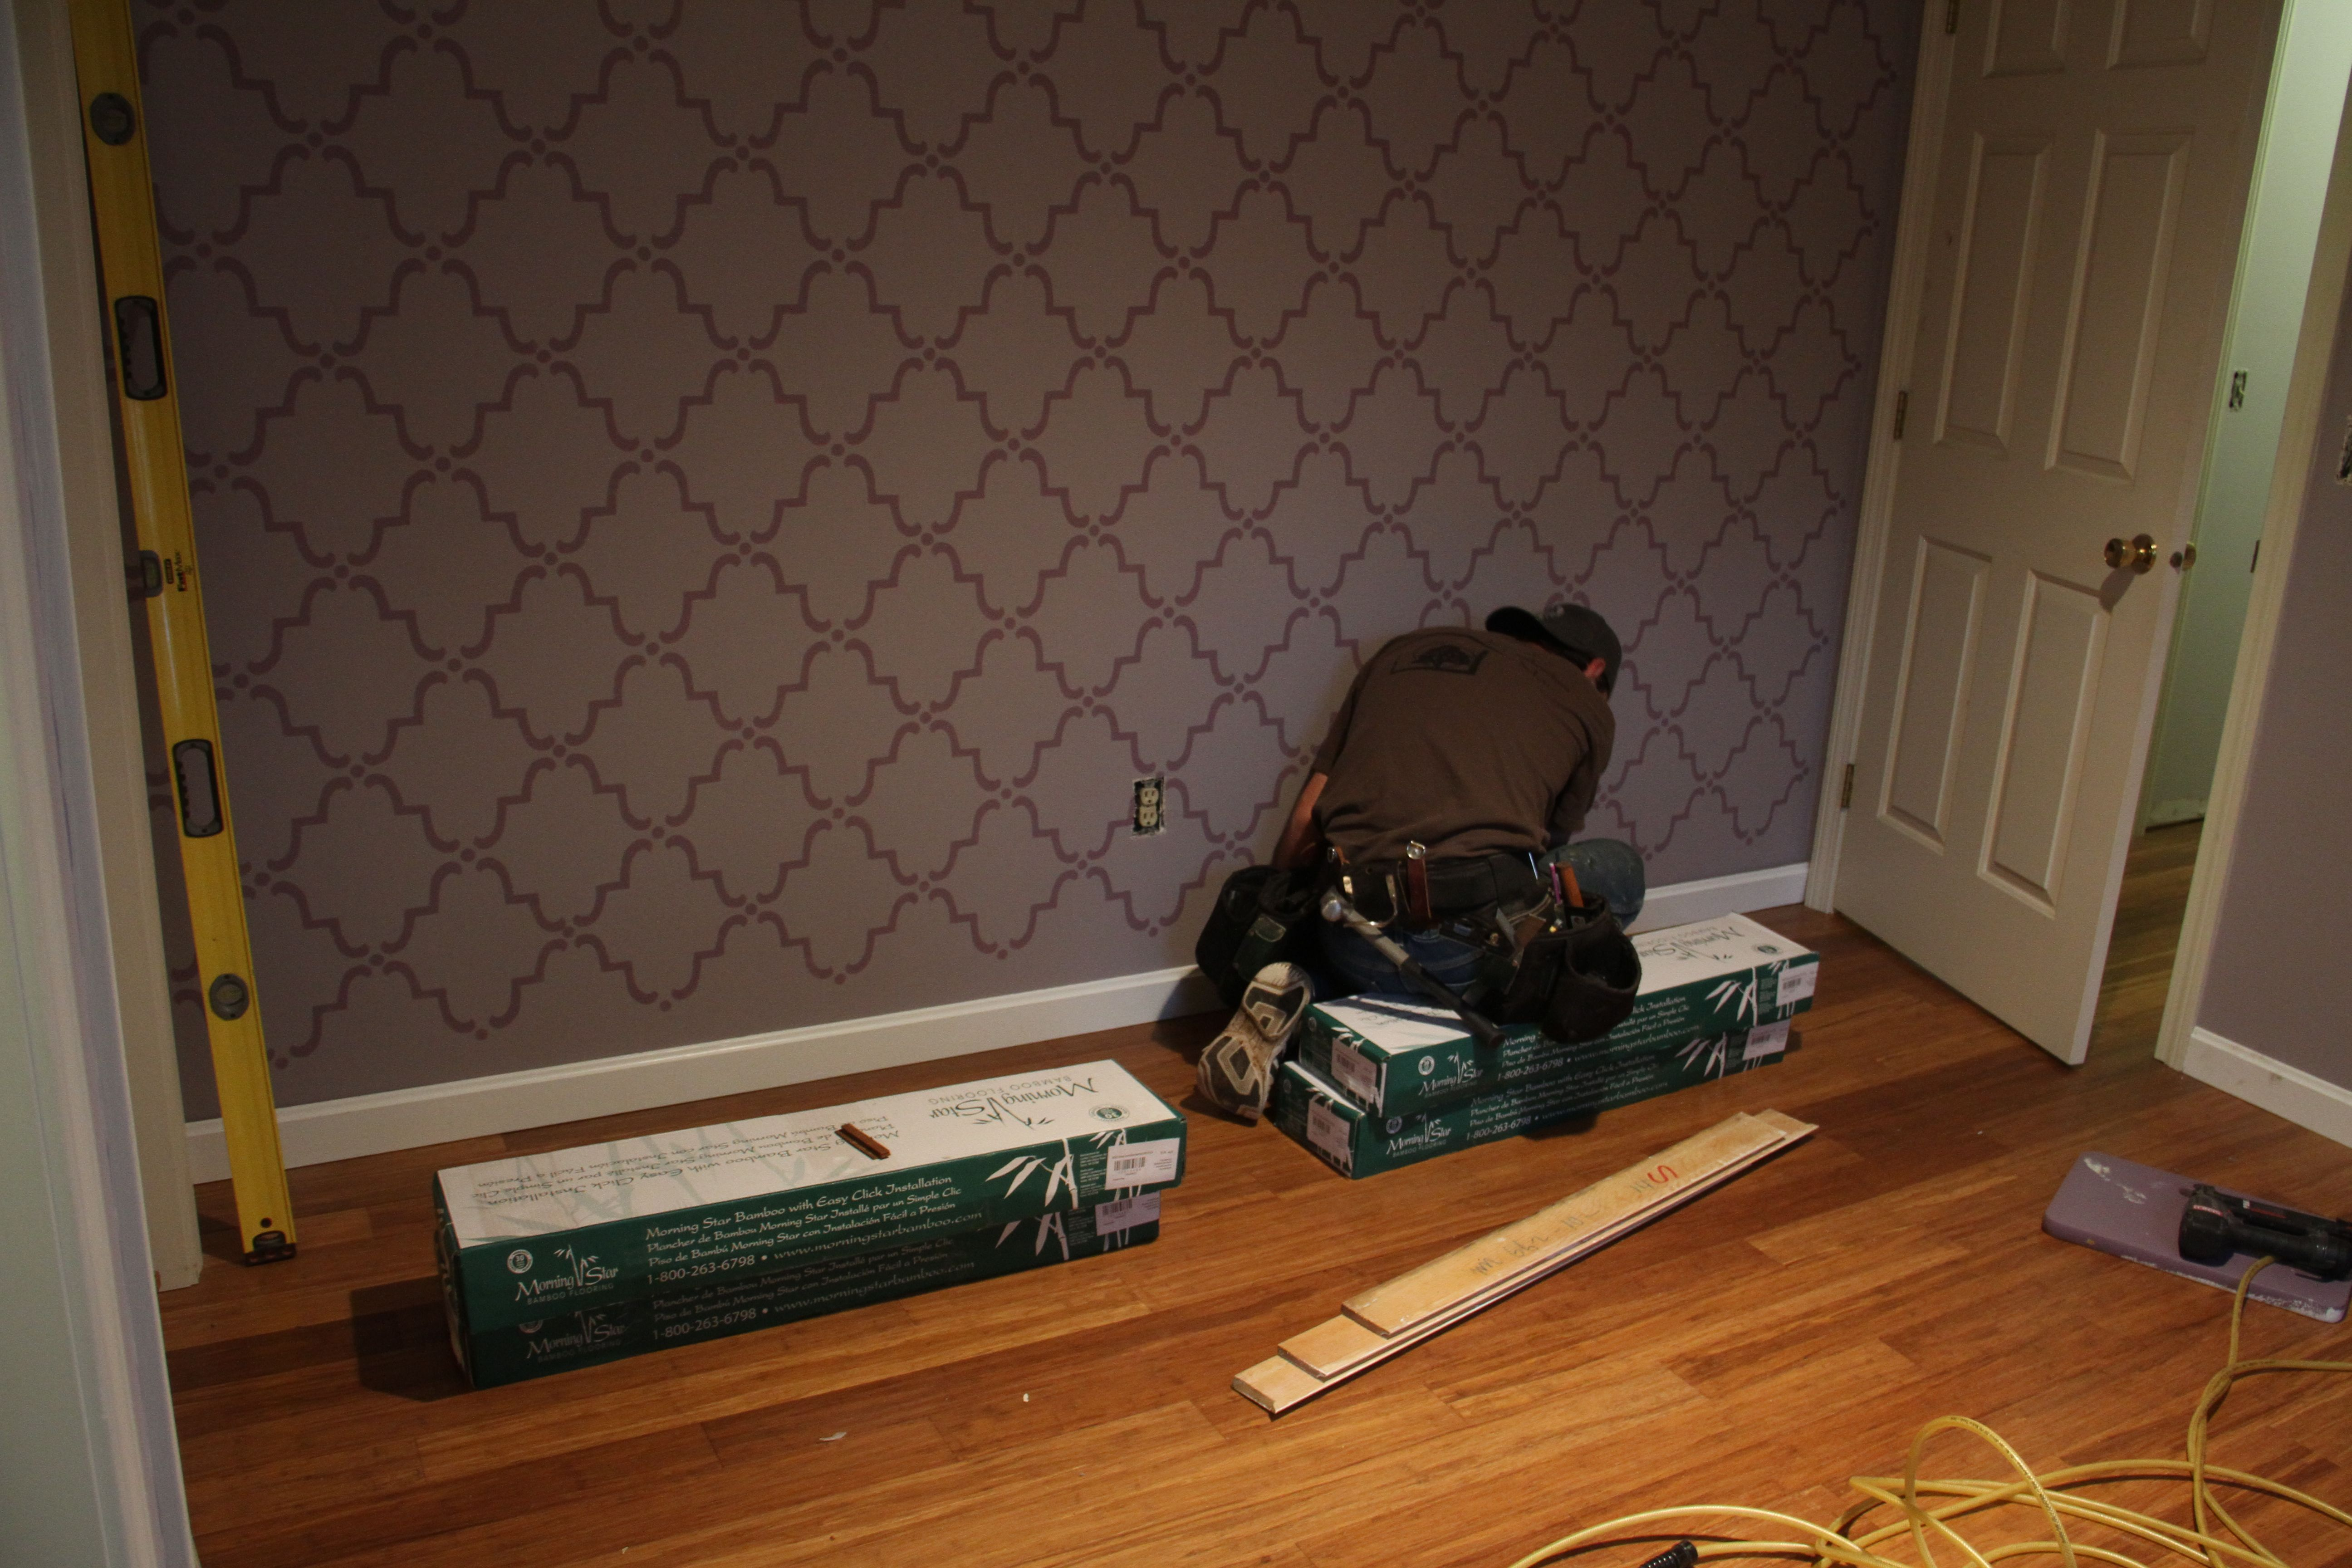 And Jonas finished up any bits of baseboard that needed reinstalling.